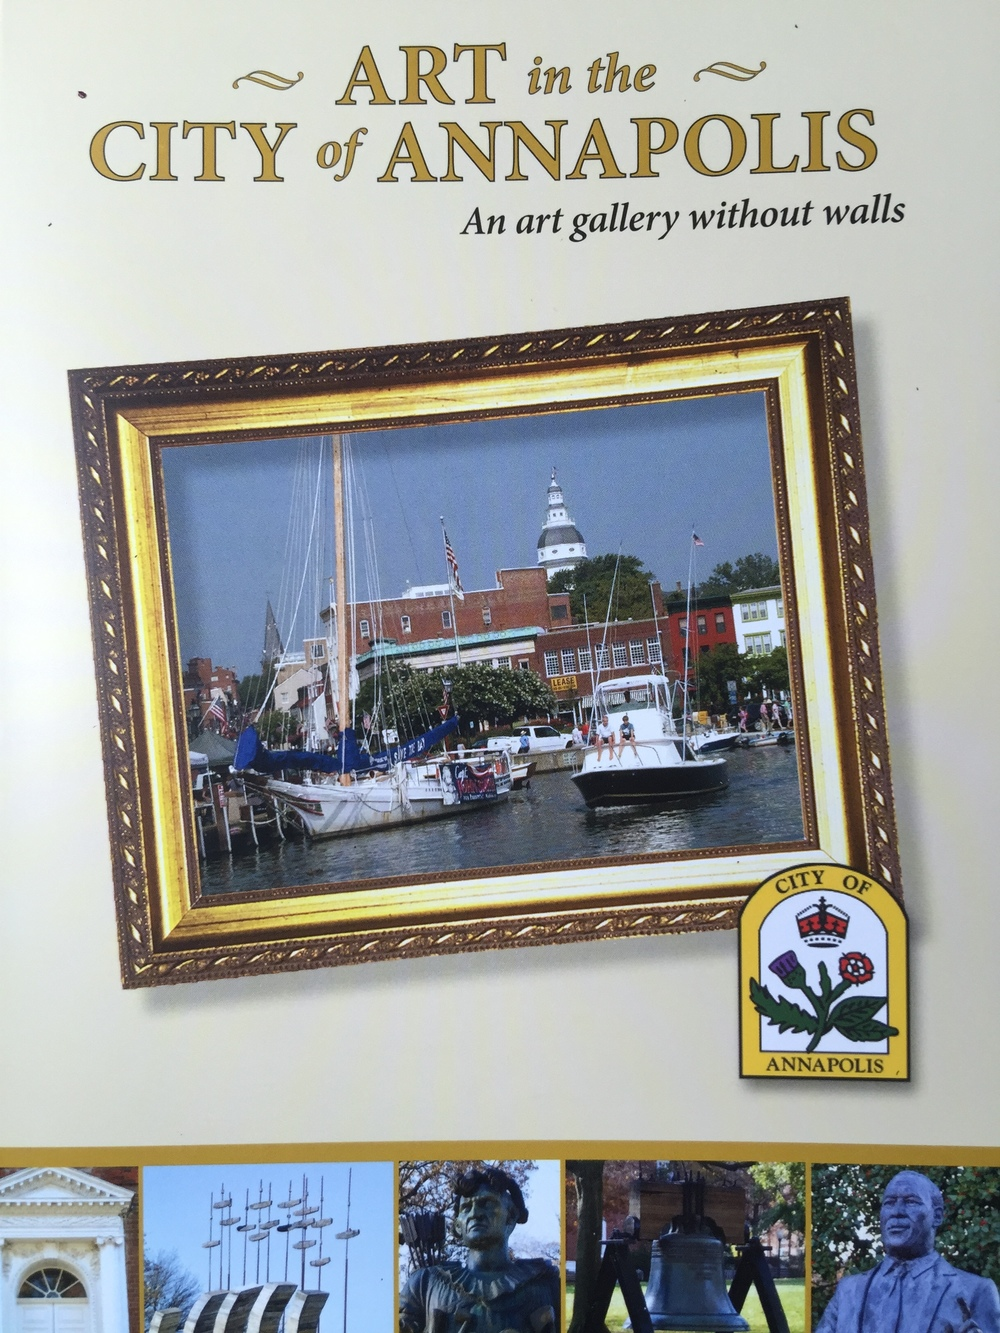 http://www.annapolis.gov/docs/default-source/boards-and-commissions/art-in-the-city-of-annapolis-catalogue.pdf?sfvrsn=0